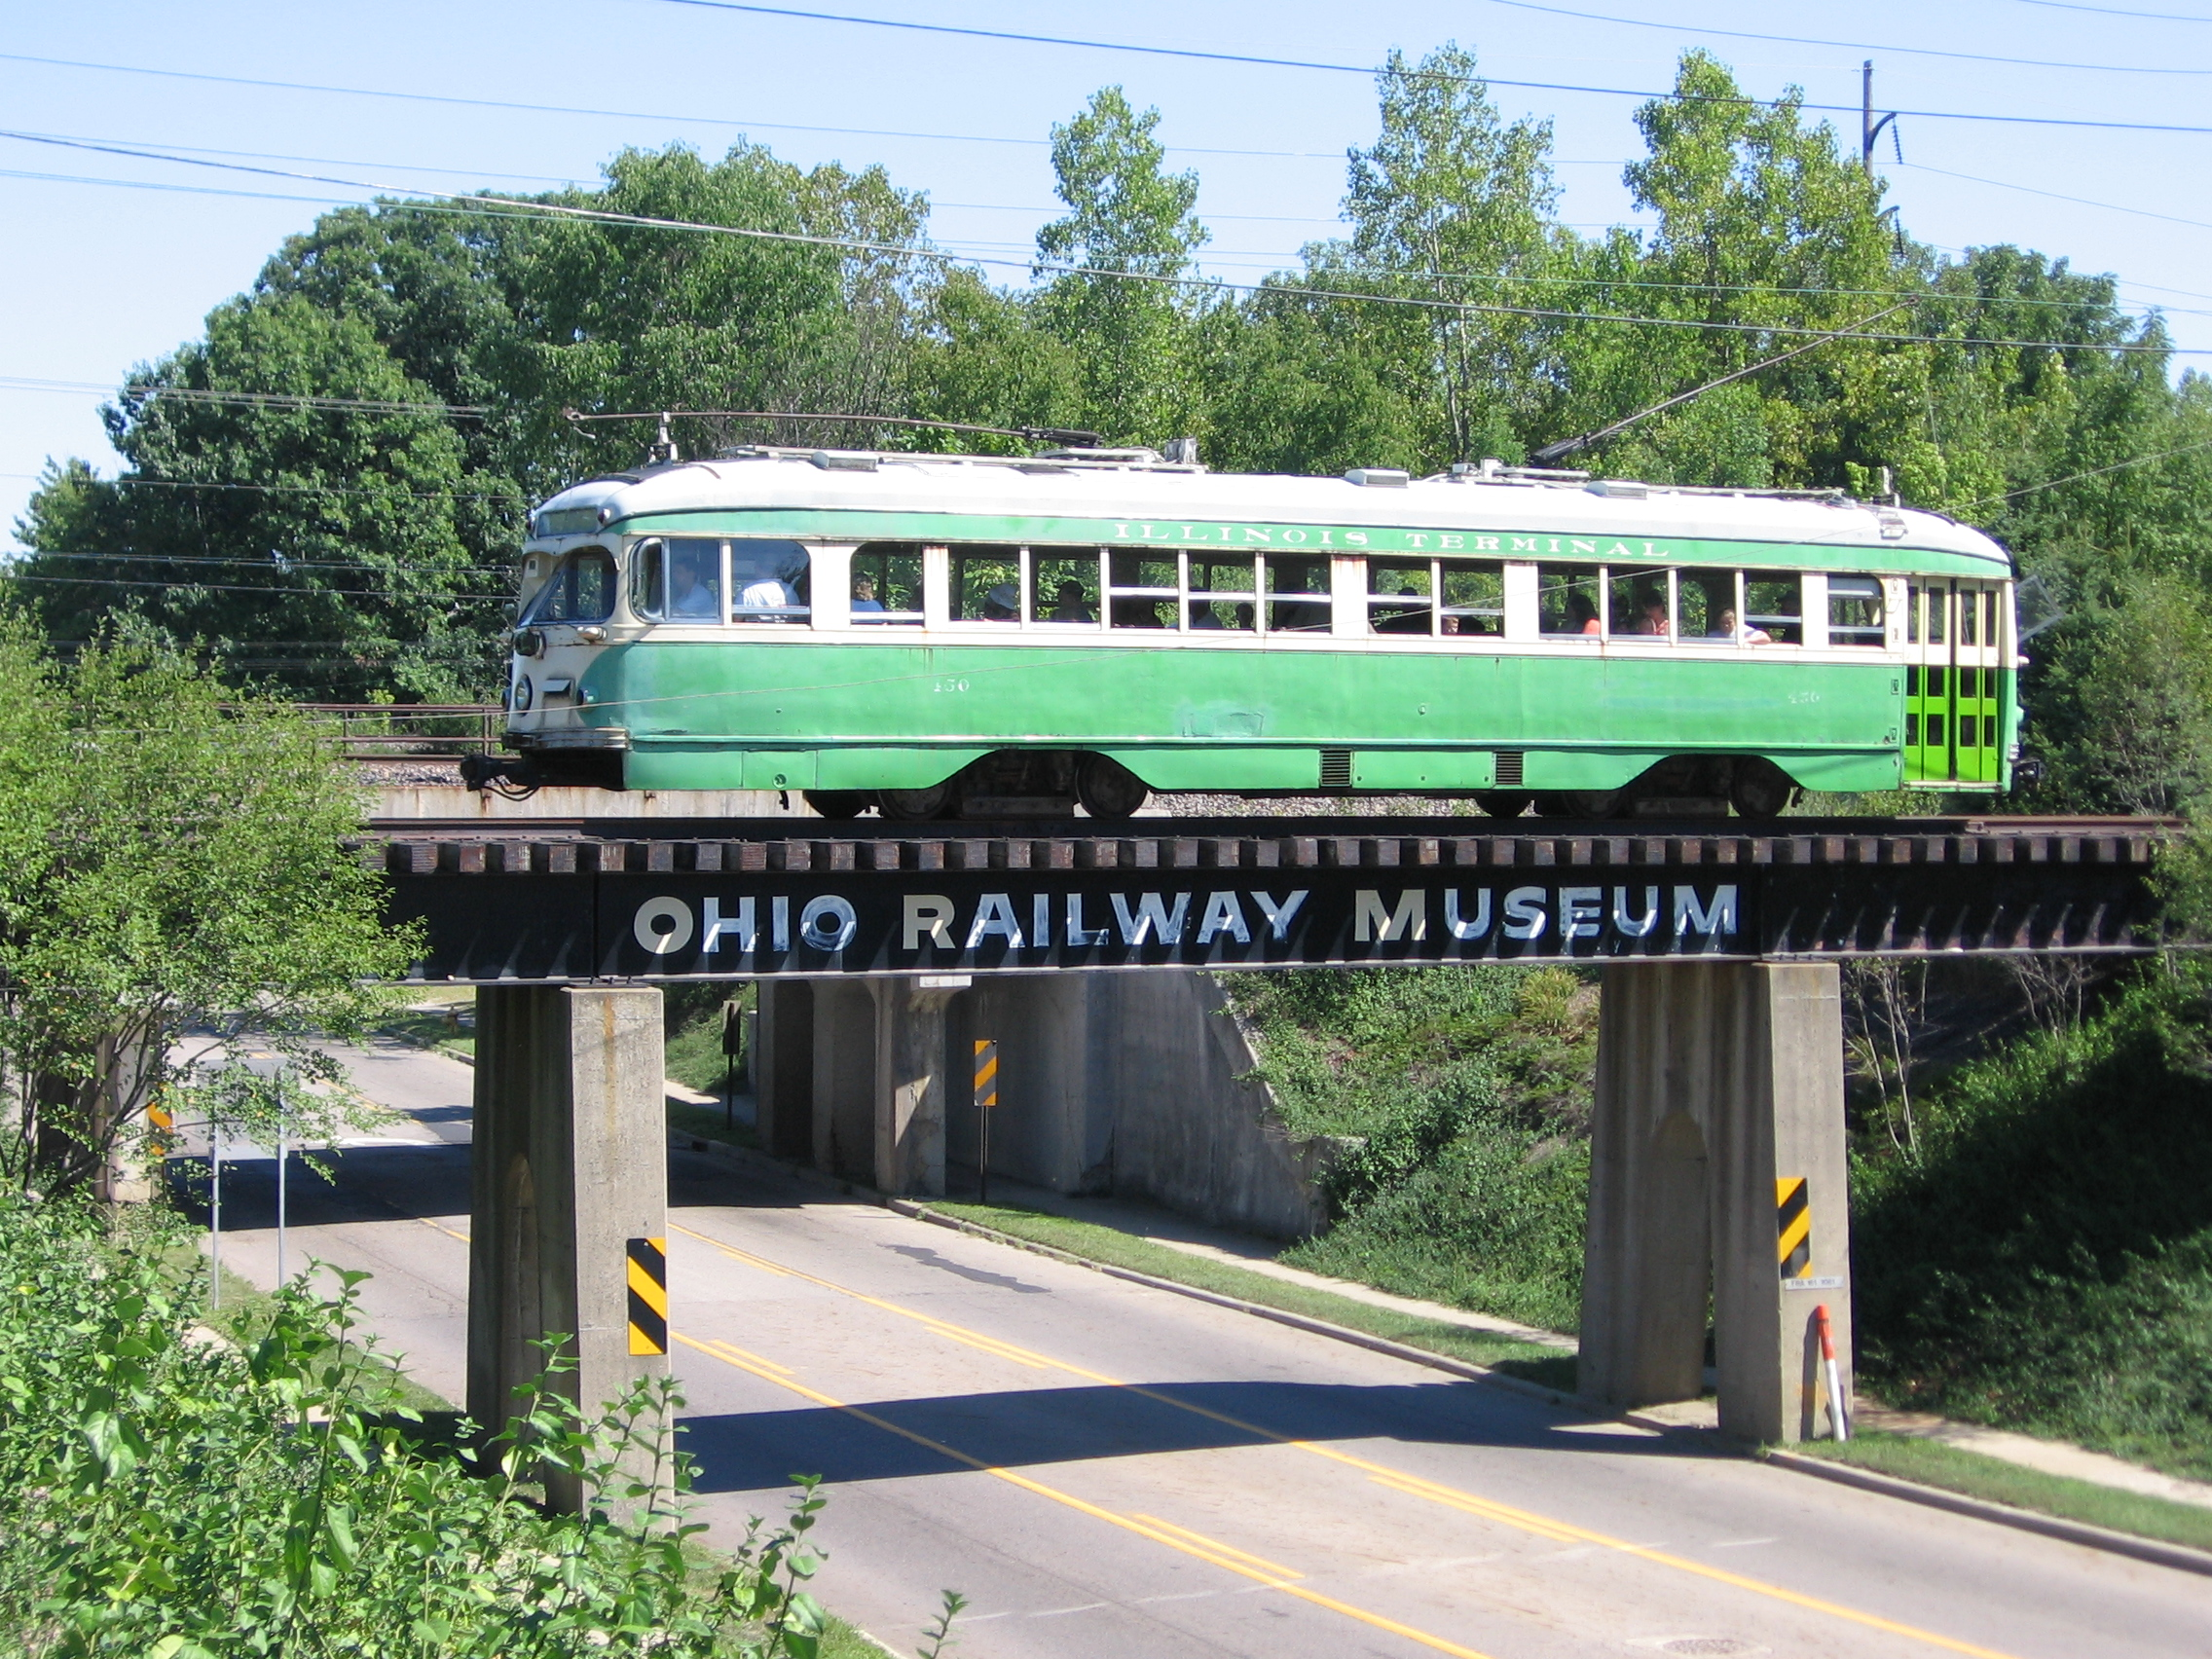 PCC streetcar 450 operating on the Ohio Railway Museum line